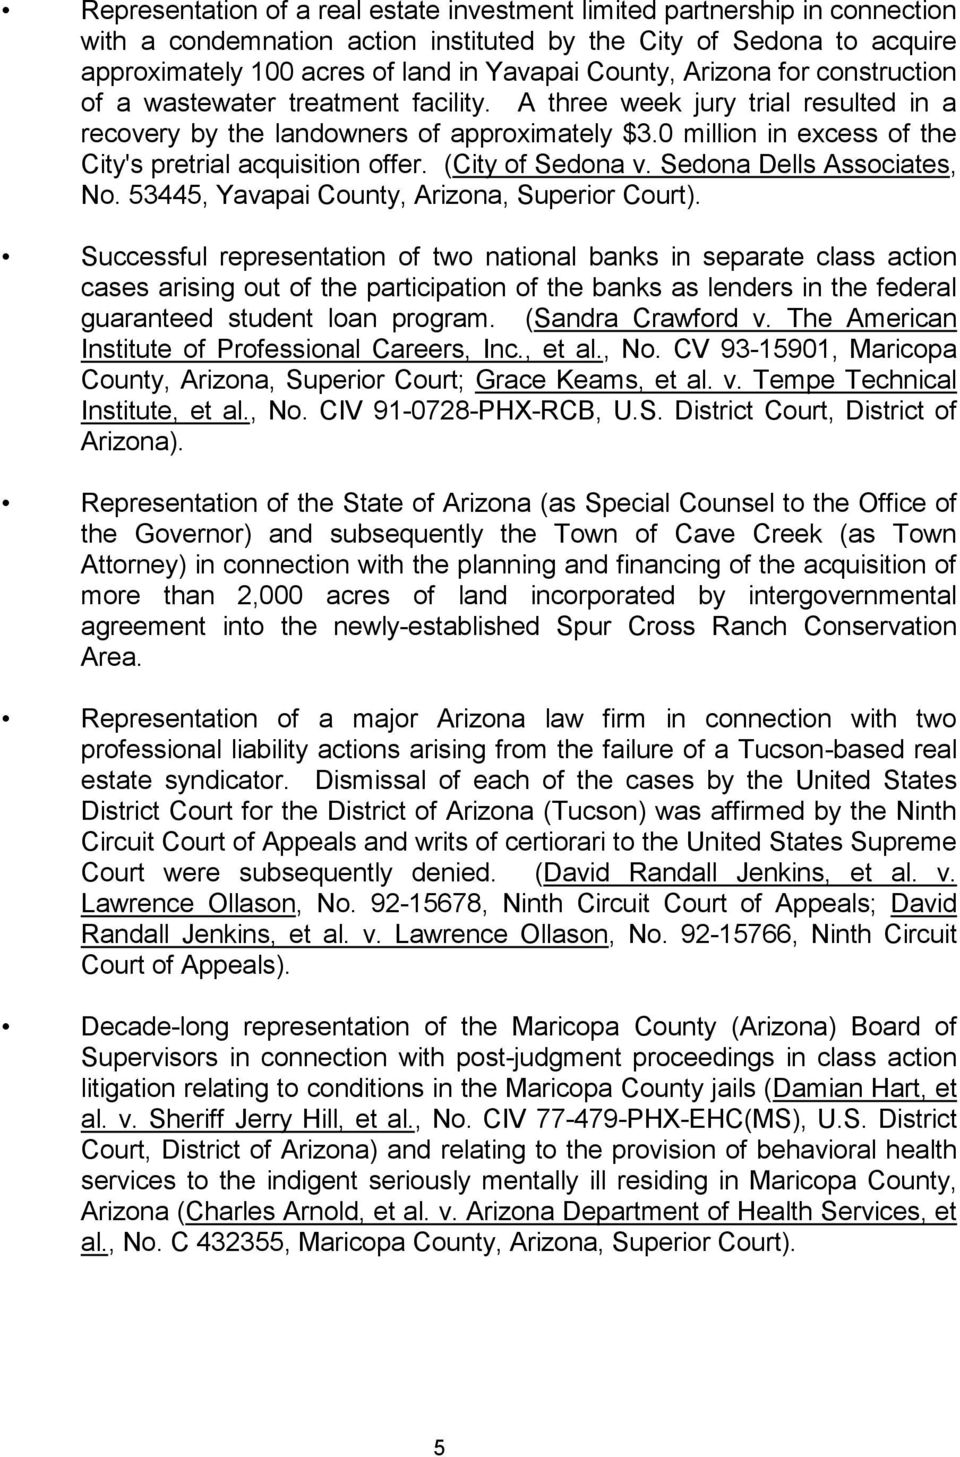 0 million in excess of the City's pretrial acquisition offer. (City of Sedona v. Sedona Dells Associates, No. 53445, Yavapai County, Arizona, Superior Court).